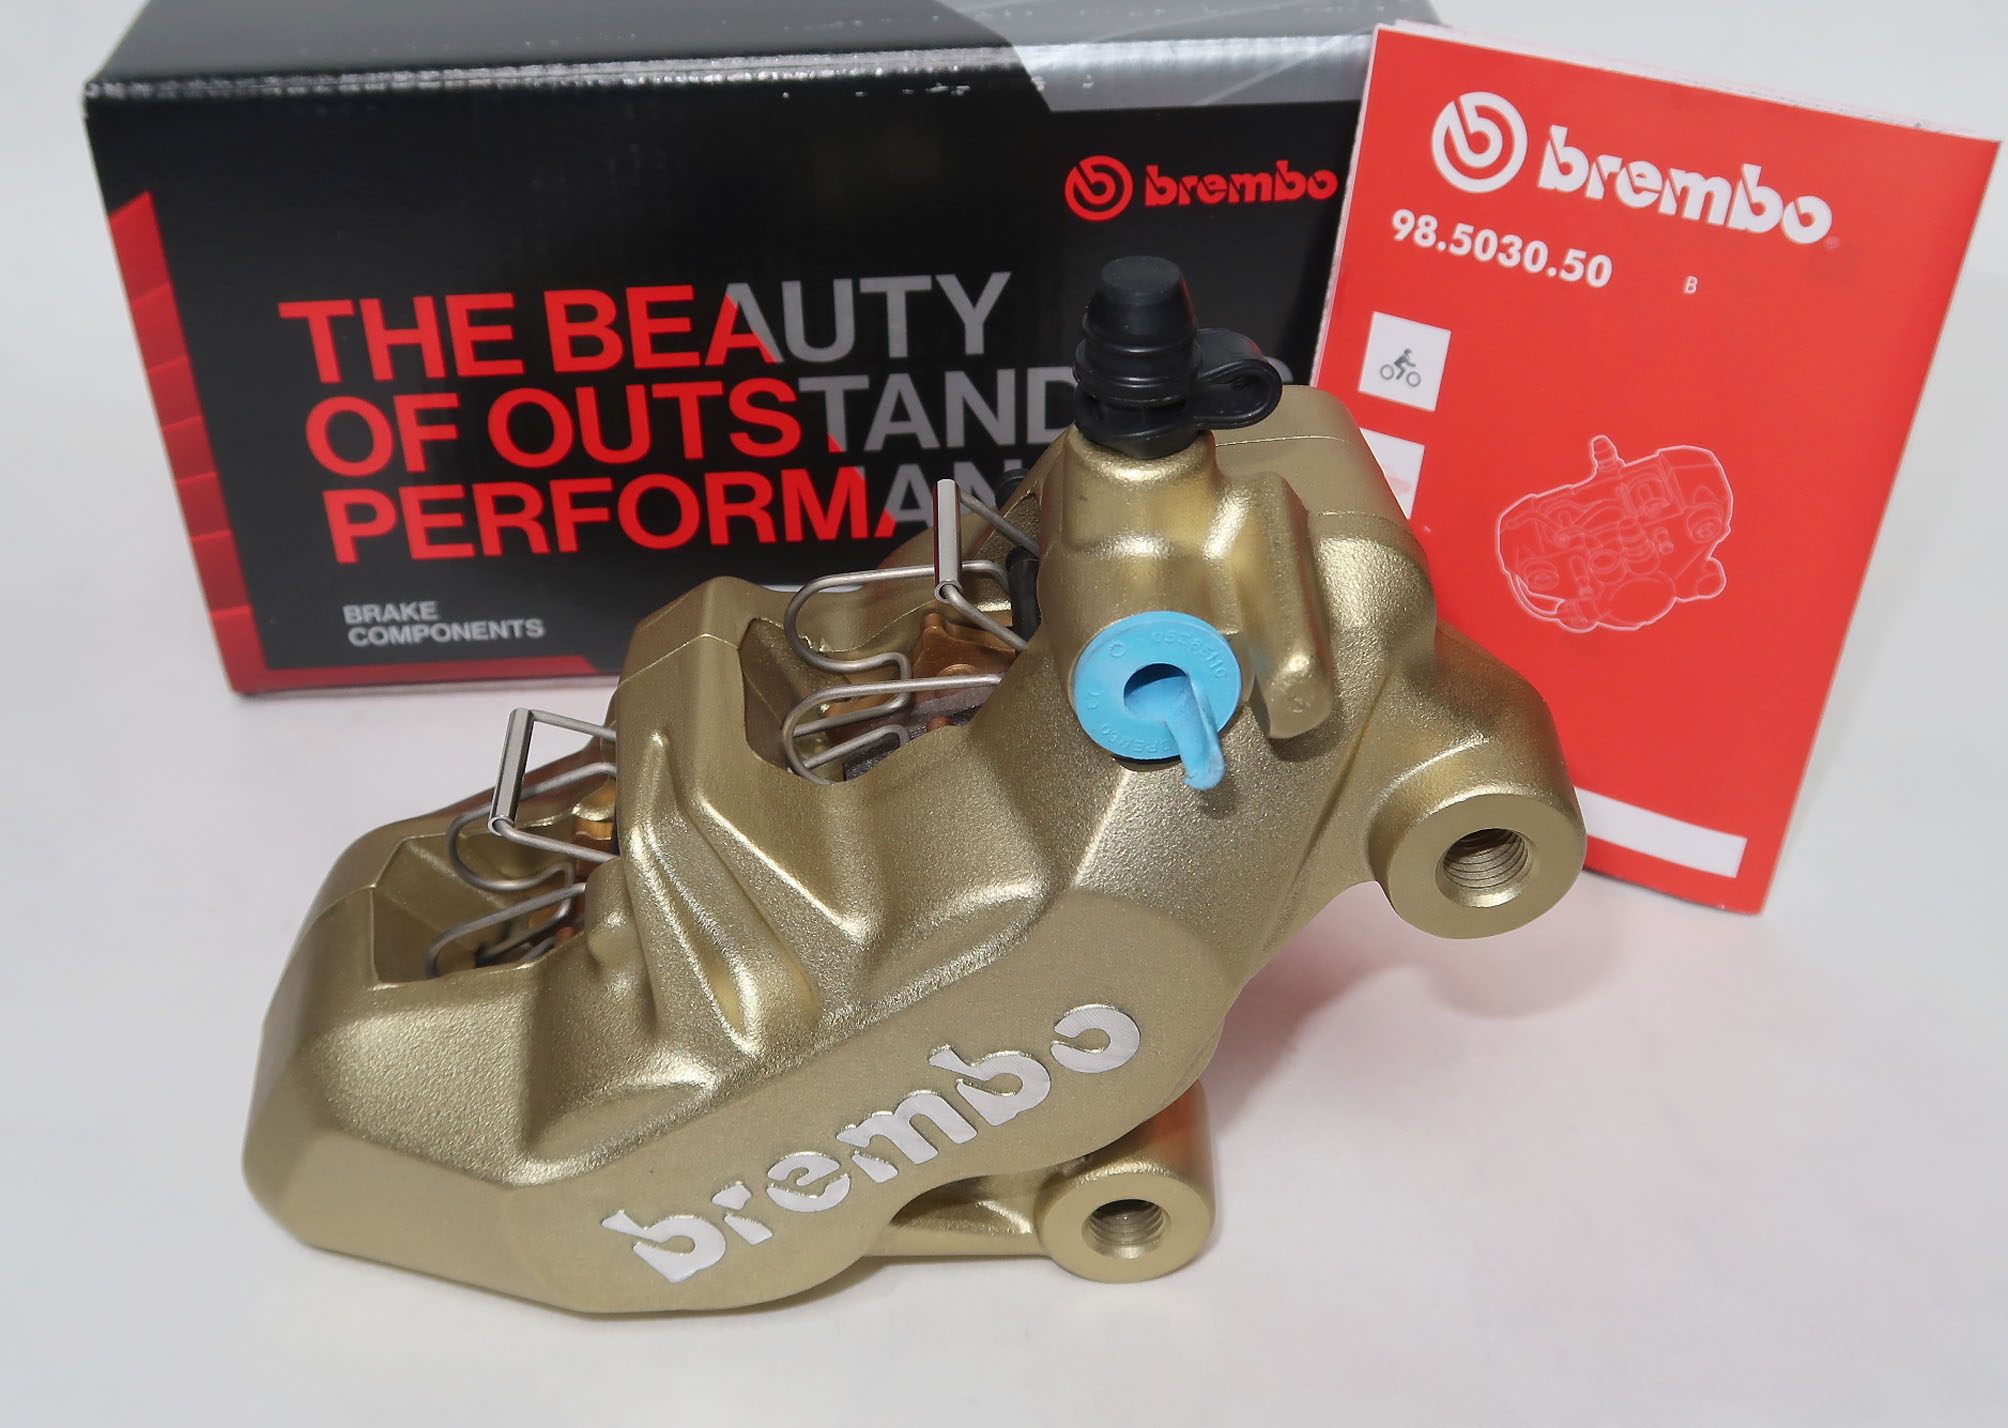 Brembo Caliper P4 34/34, gold, right side